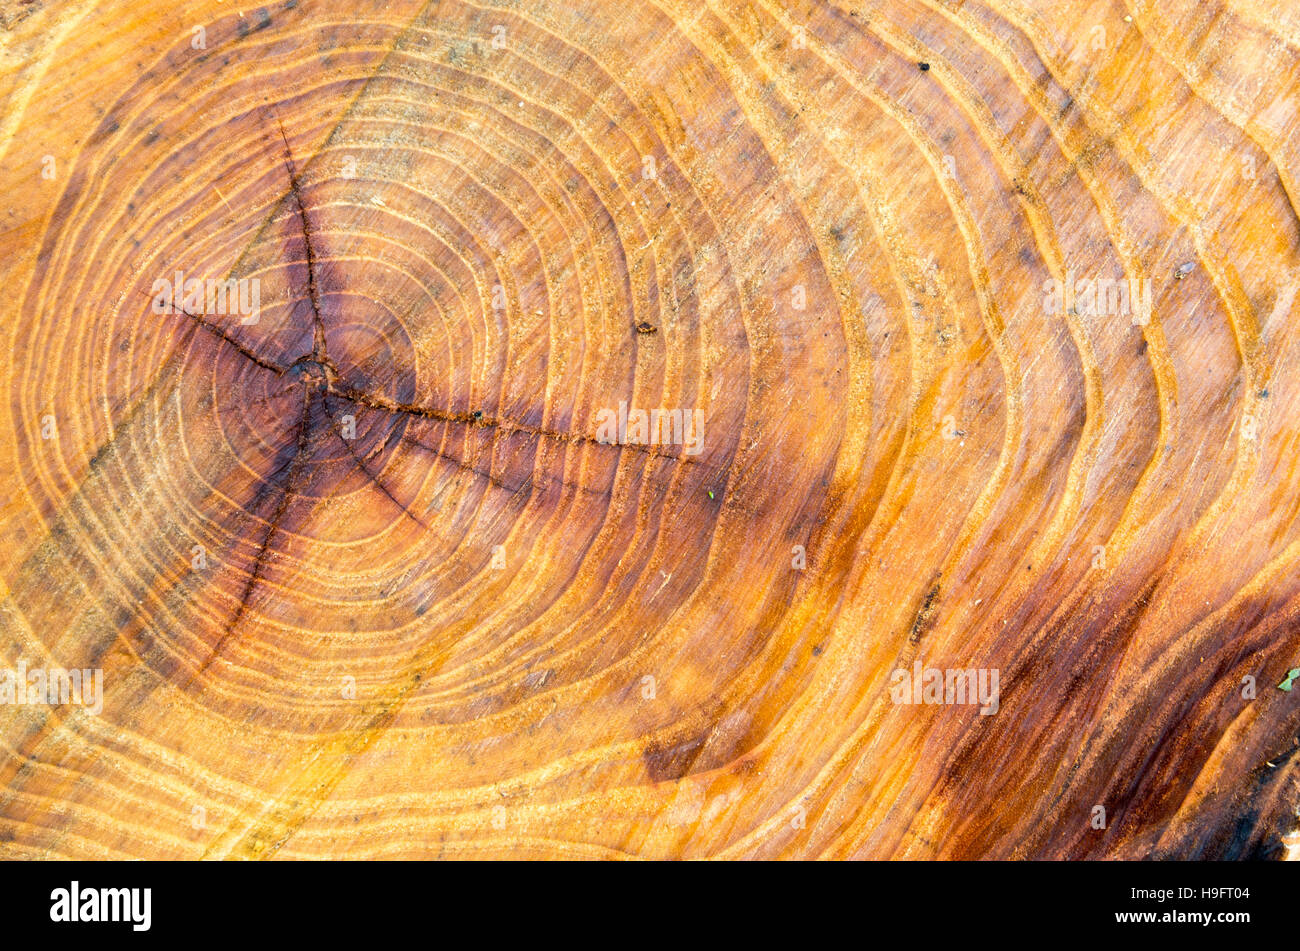 Old and wet cut down a tree with annual rings close-up Stock Photo